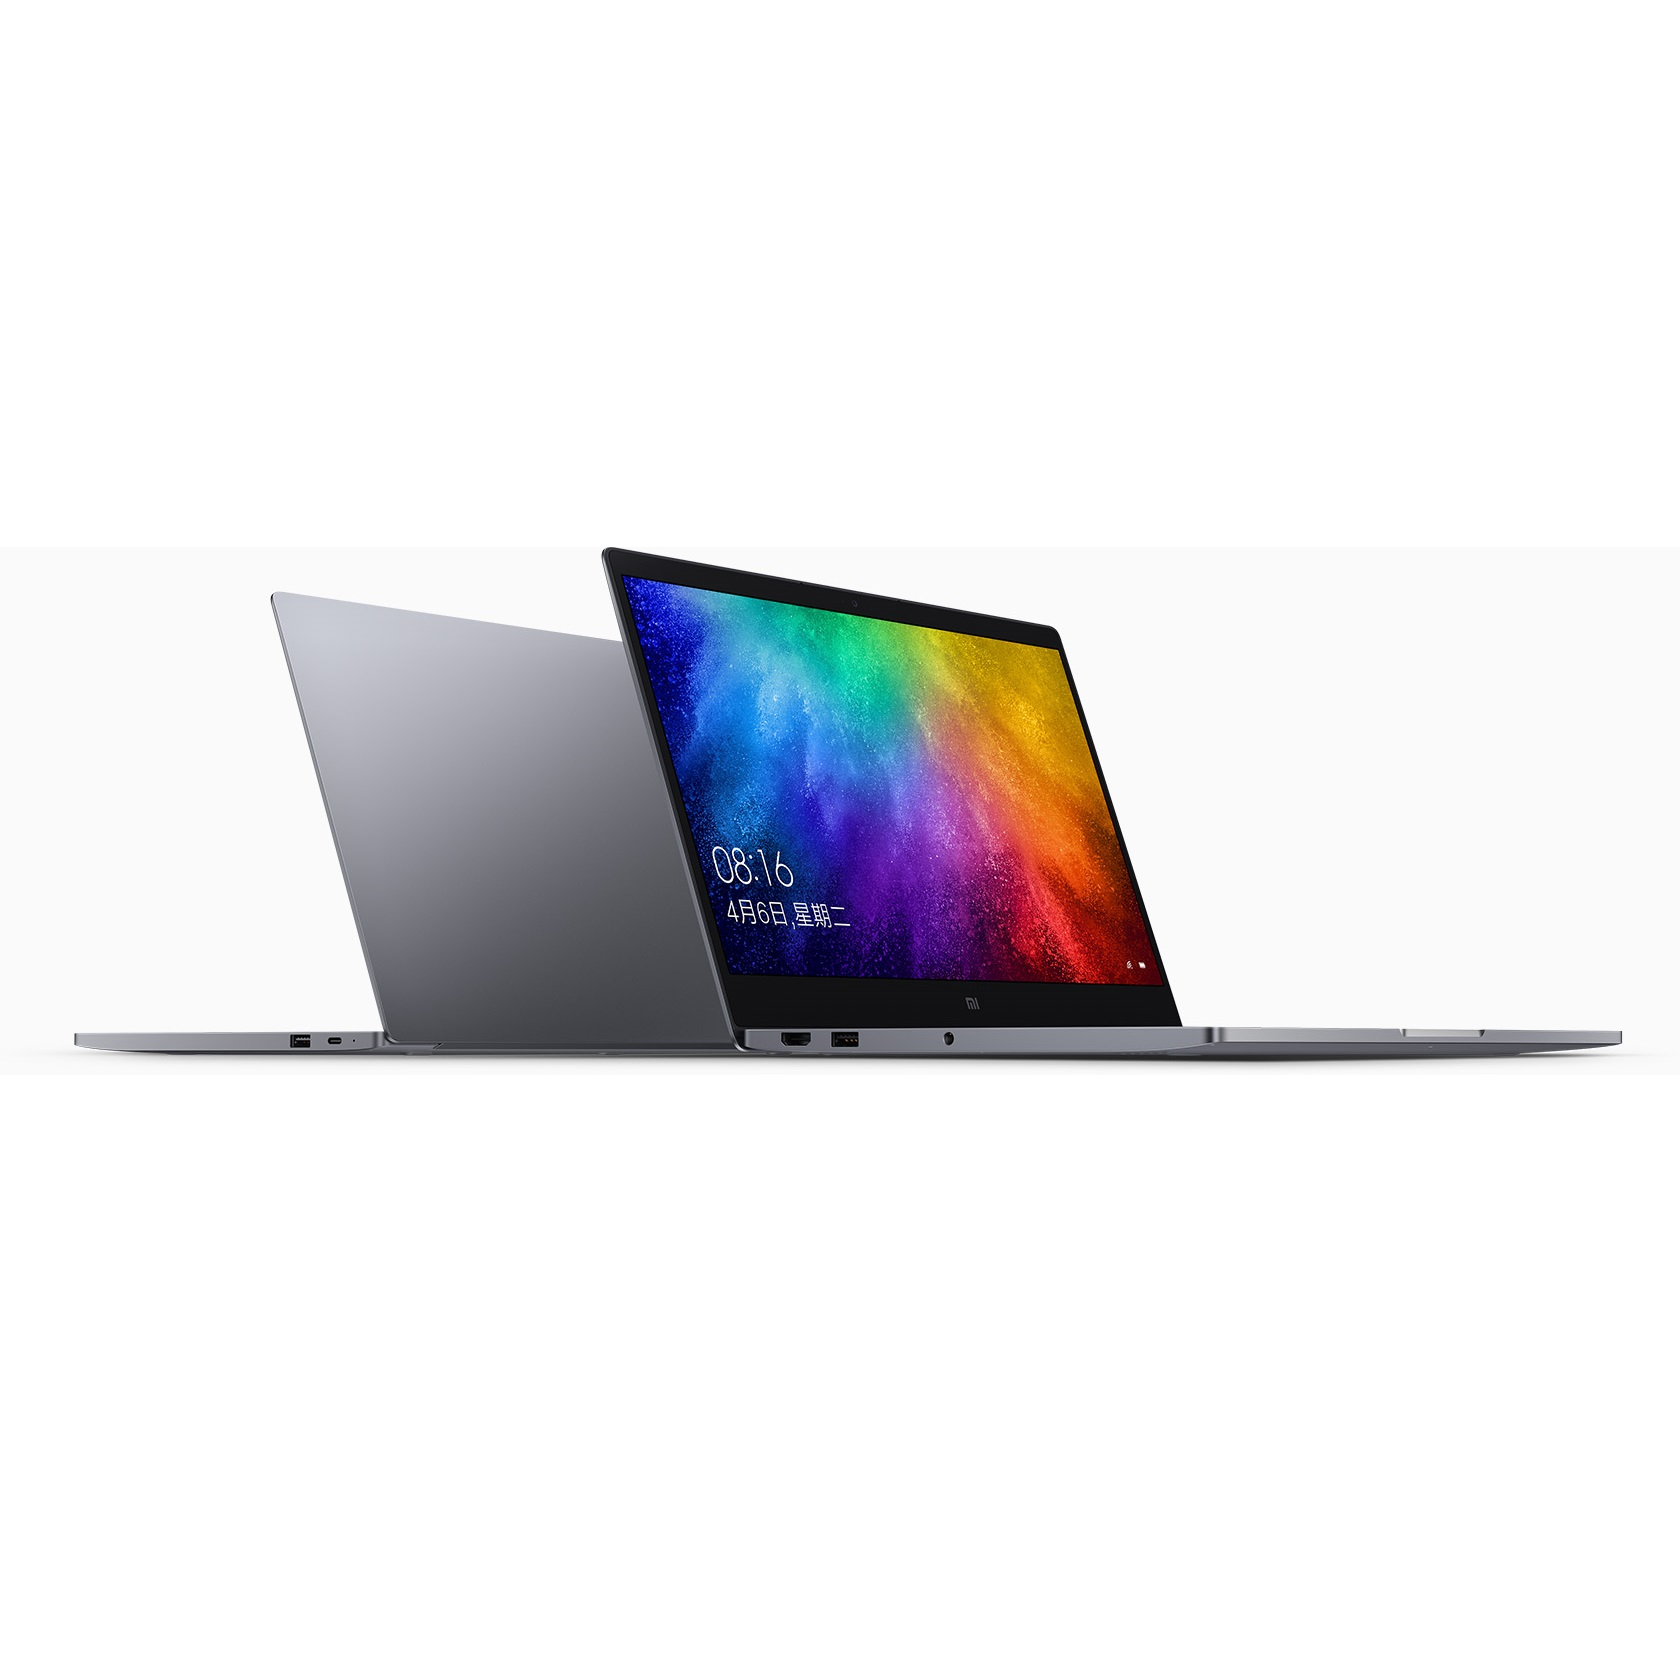 xiaomi mi notebook air 2018 version mit aktueller hardware. Black Bedroom Furniture Sets. Home Design Ideas